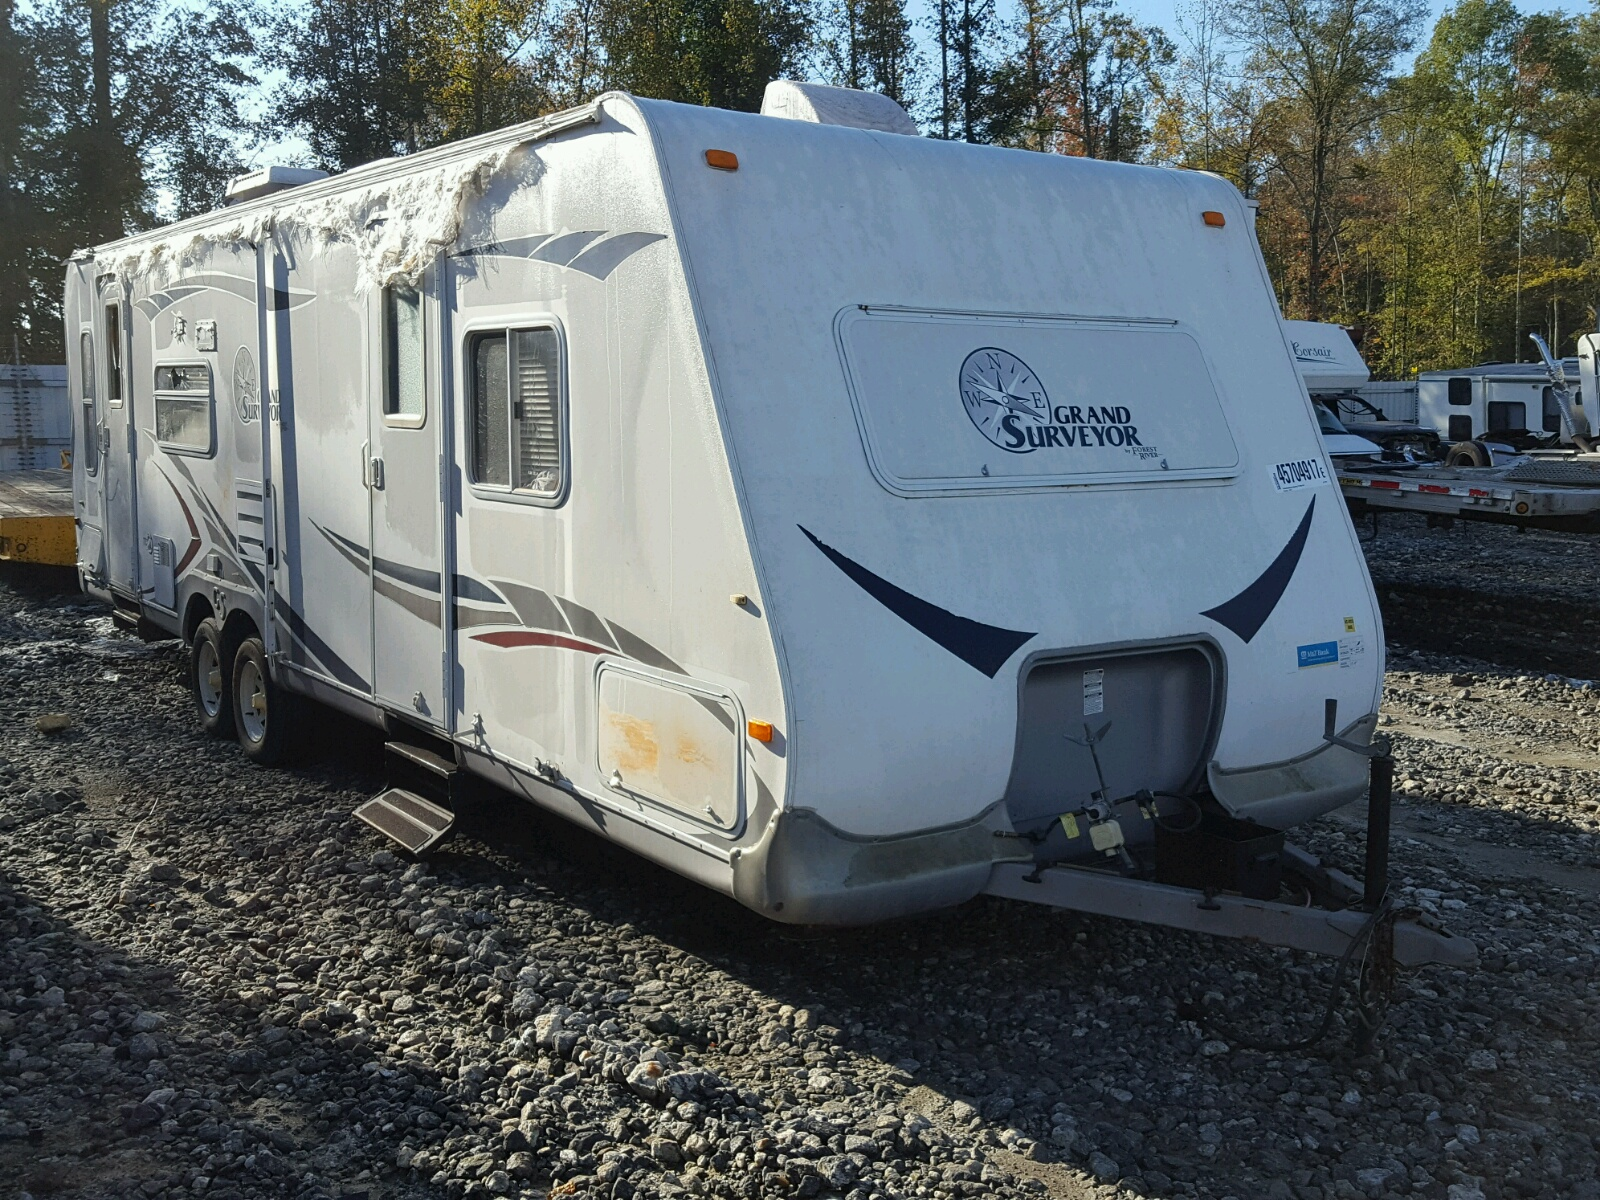 Salvaged Recreational Vehicles For Auction